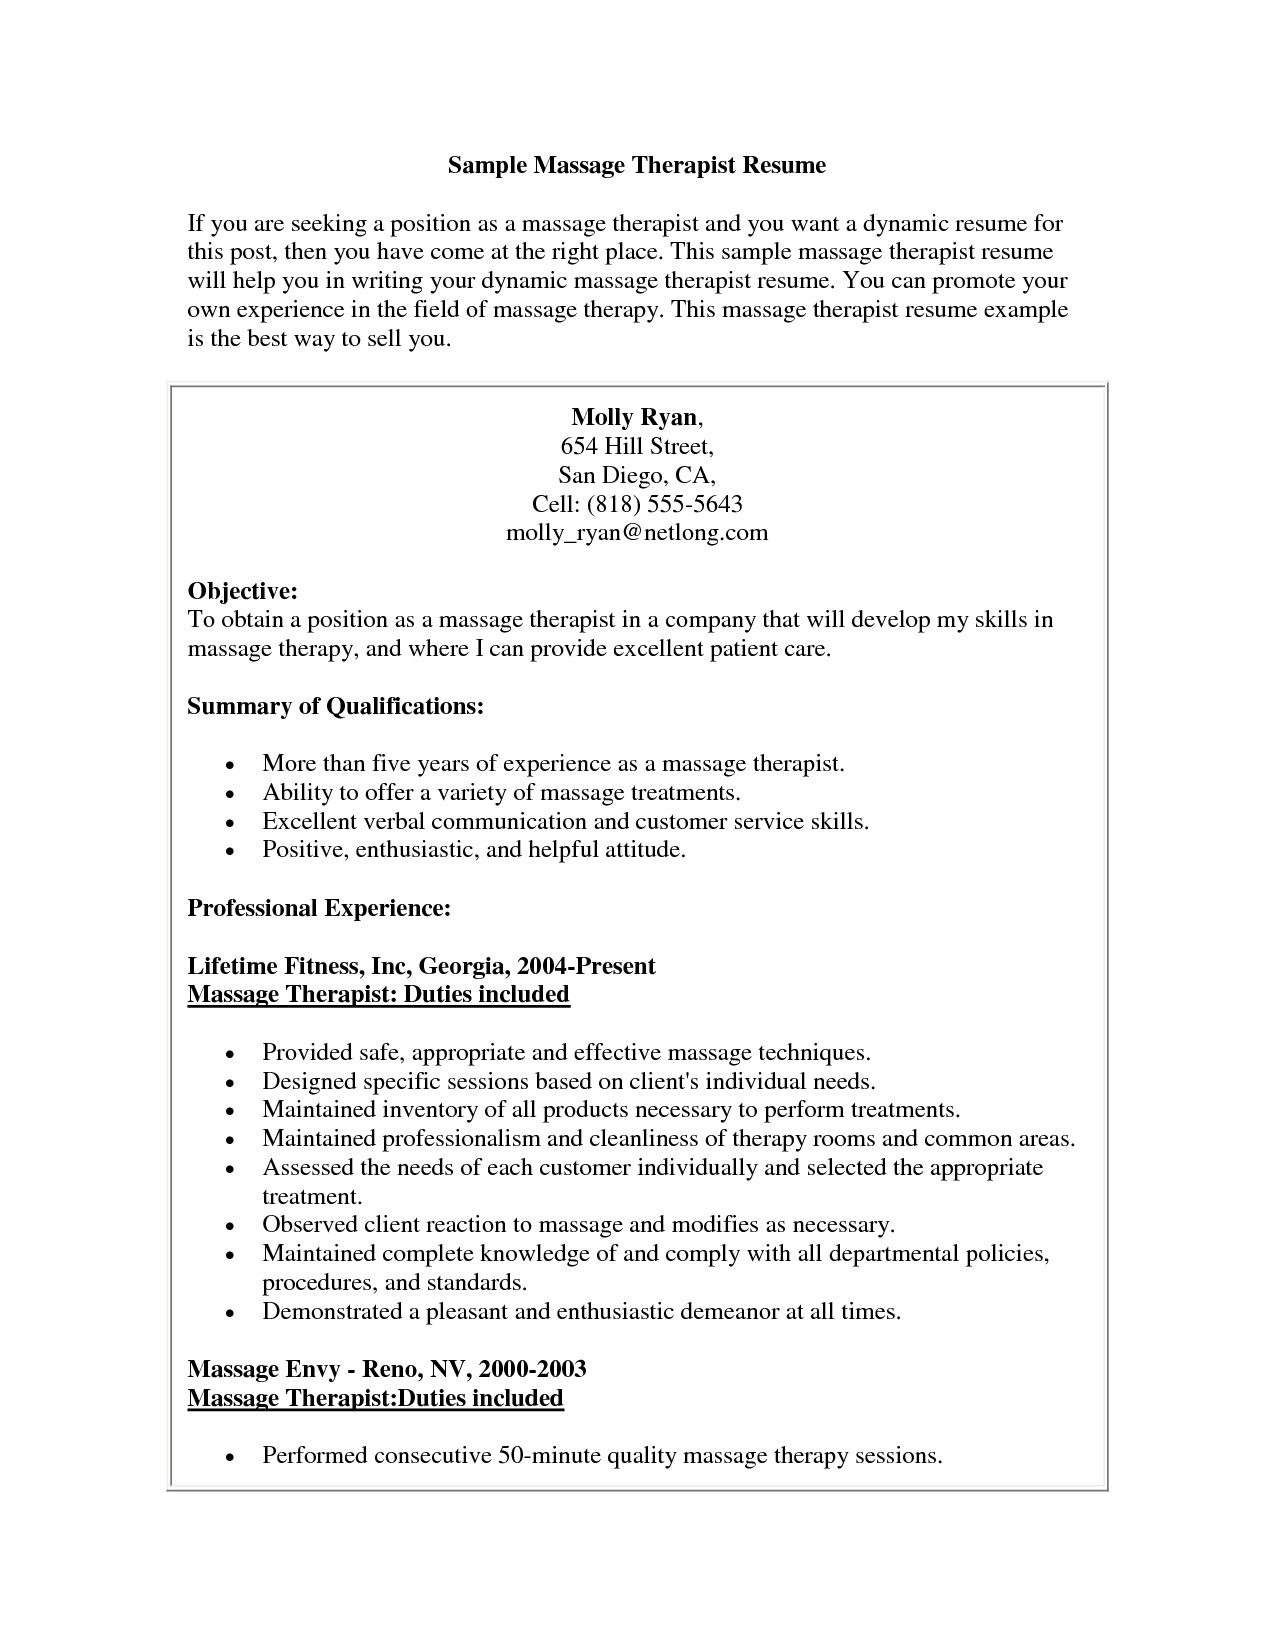 massage therapist resume template Collection-Massage therapist Resume Example Beautiful Massage therapist Resume Sample Massage therapist Resume Sample Massage therapist 12-p